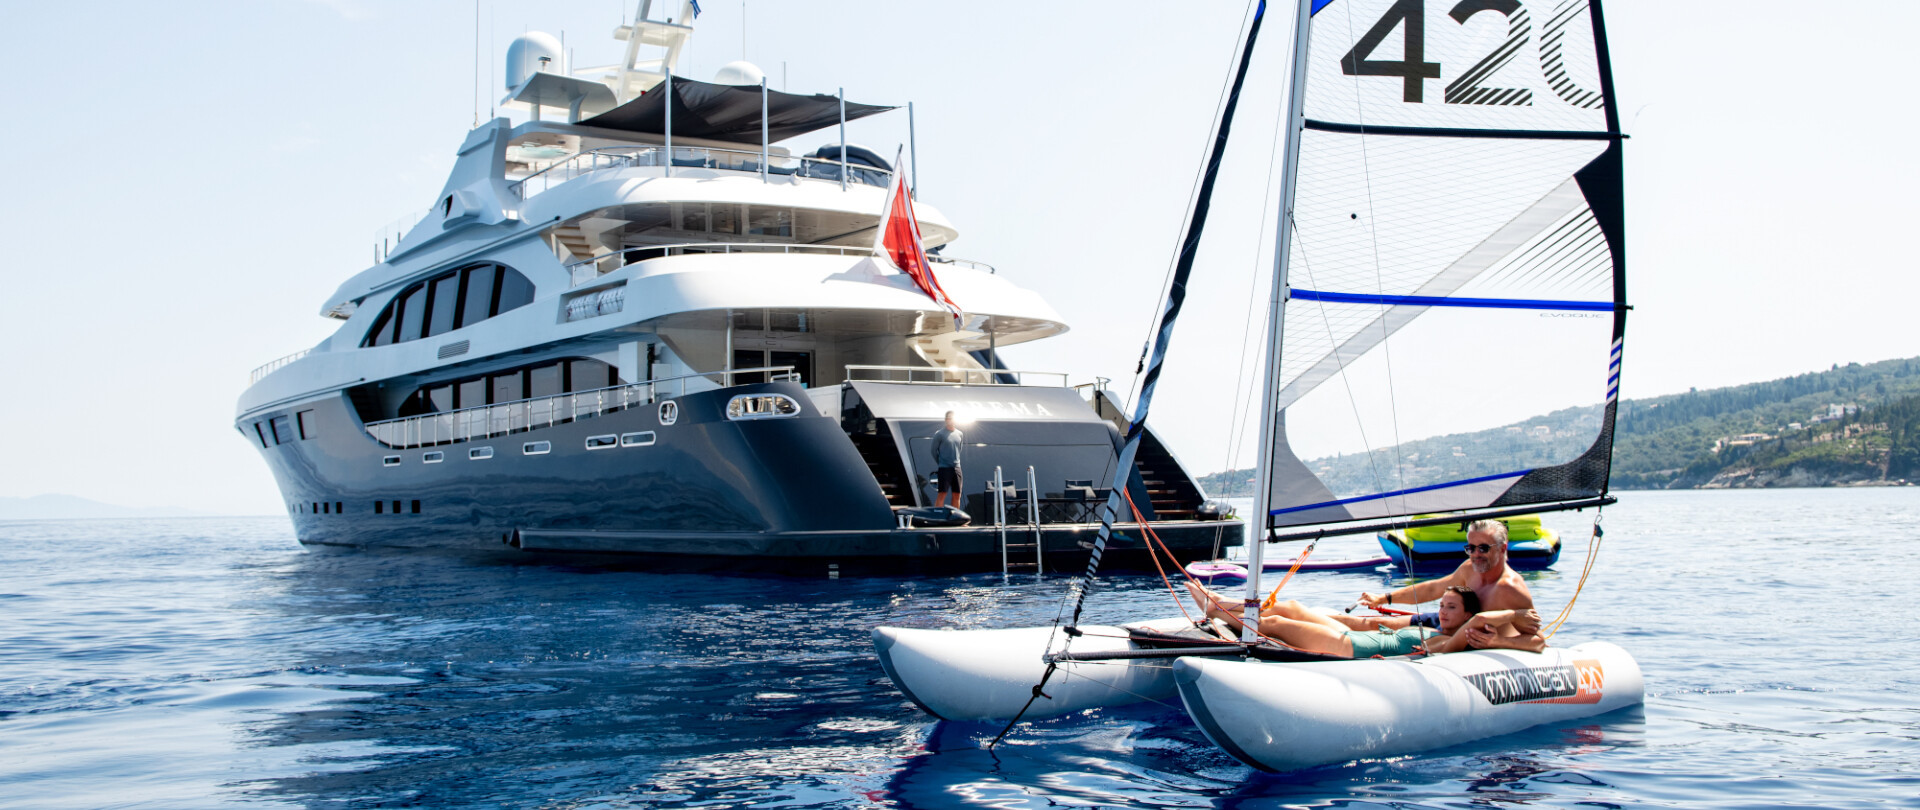 5 reasons to charter a yacht in Greece this summer photo 1